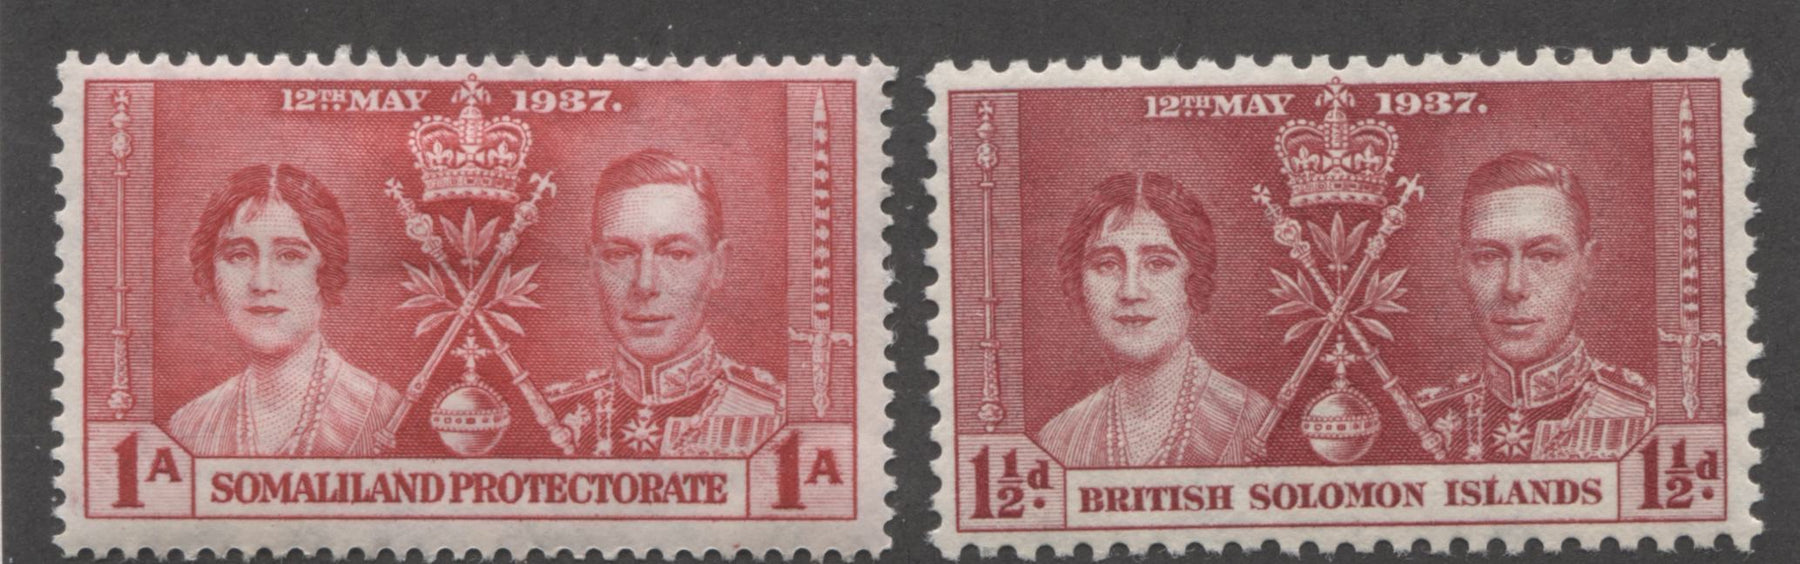 Into The Red Part Two - The 1937 Coronation Issue Common Design